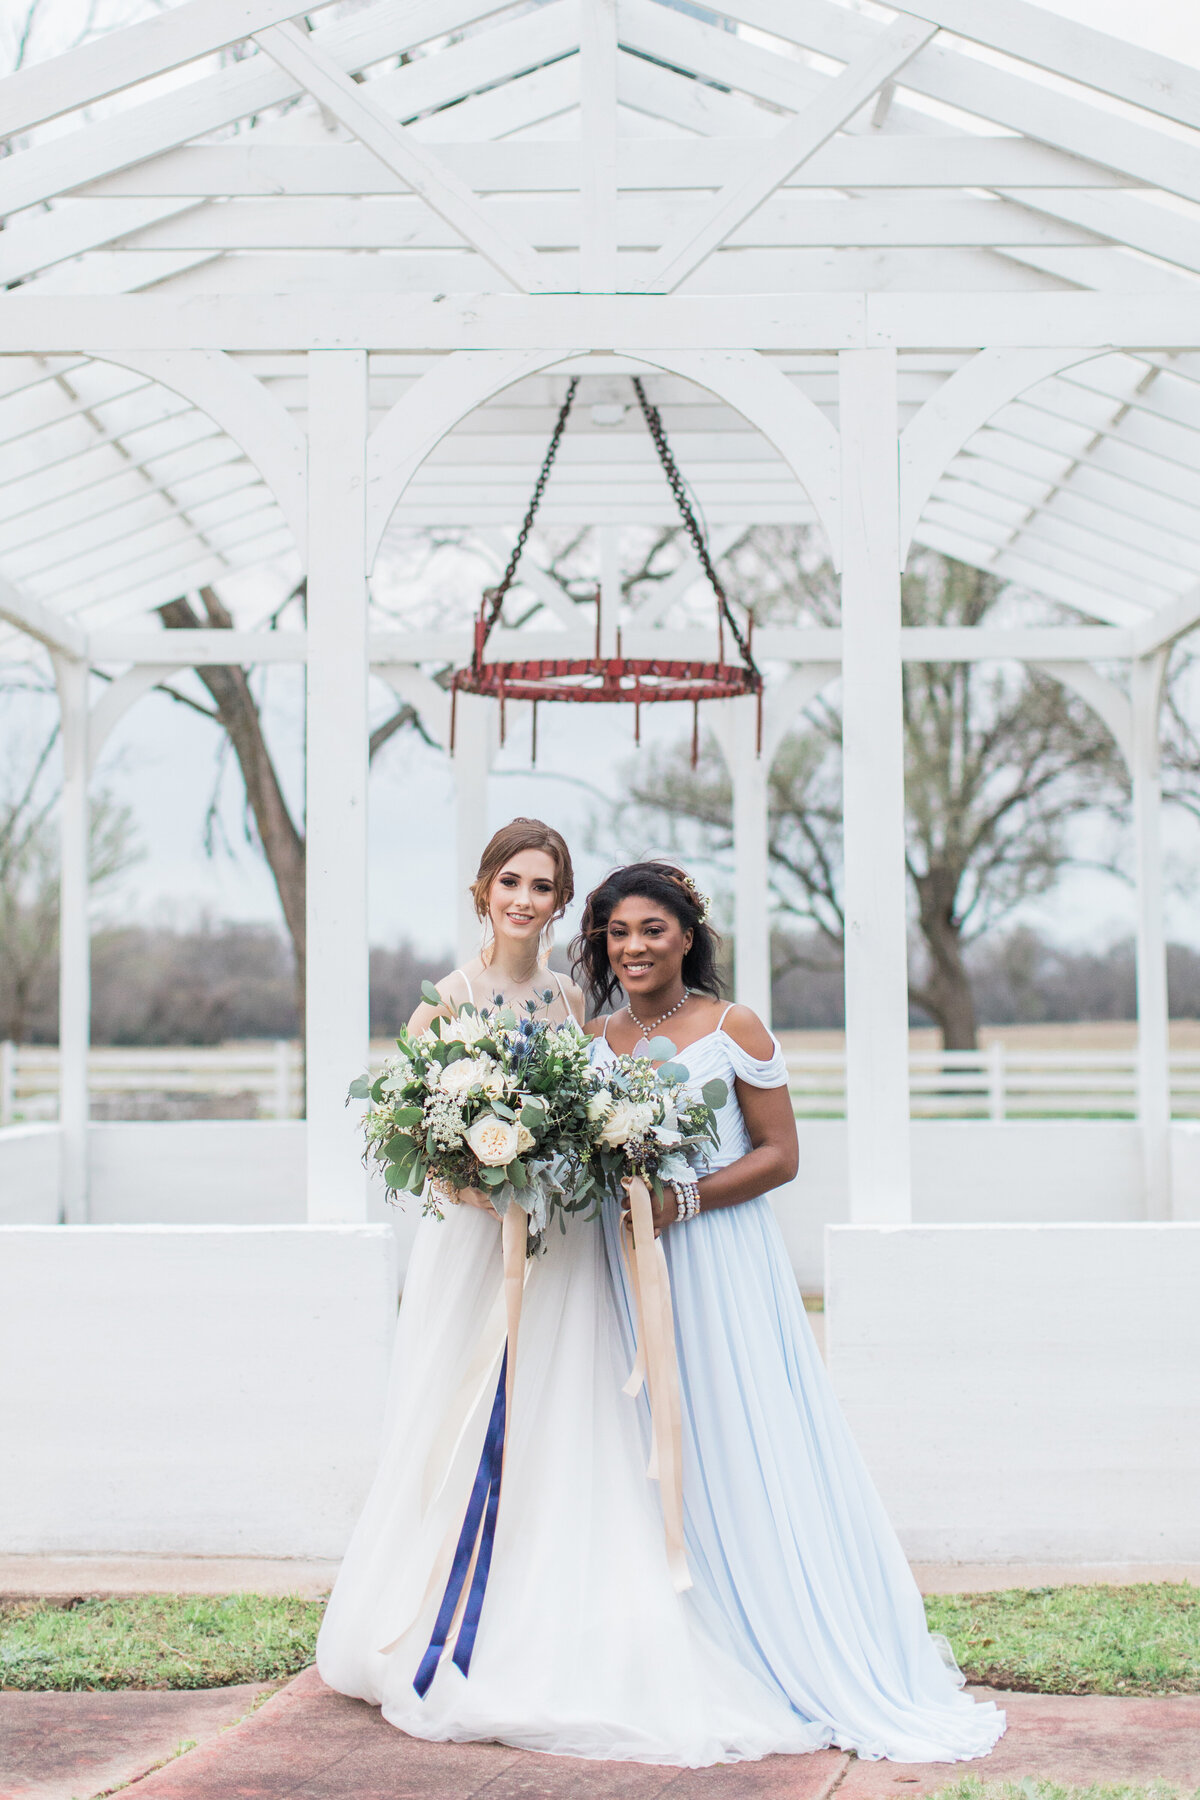 A bride and bridesmaid standing in front of the Greenhouse Arbor at the Grand Texana Wedding venue